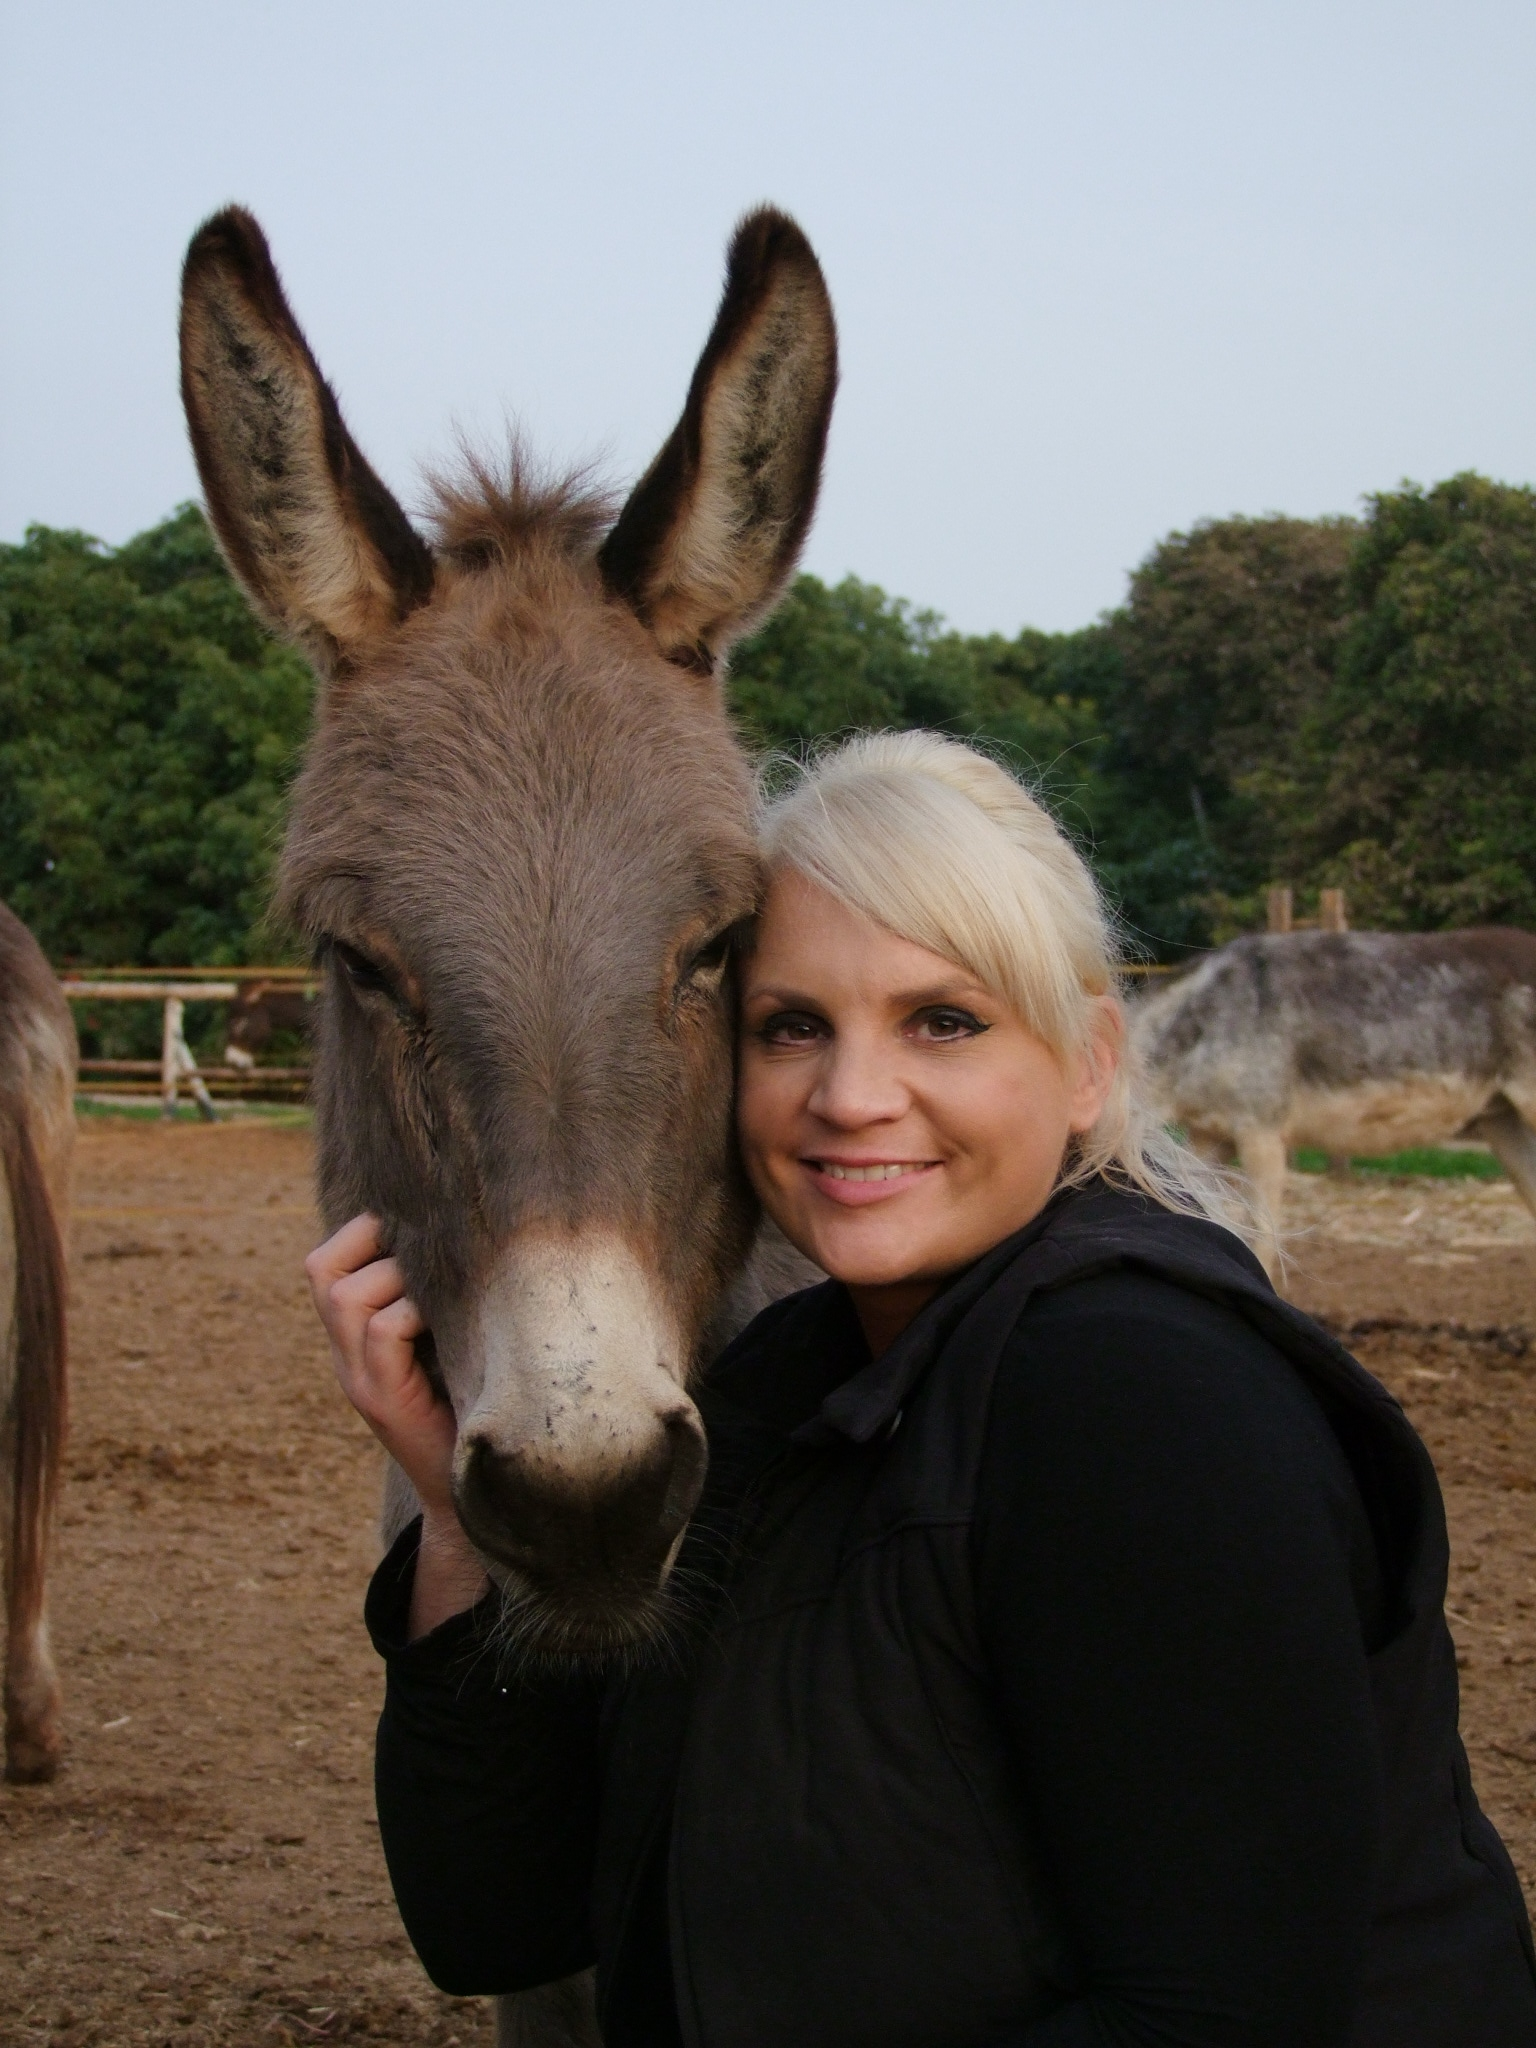 Click photo to download. Caption: Lucy Fensom, a former British stewardess, opened a donkey sanctuary that tends to equines located mostly in the West Bank. Credit: Tova Saul.